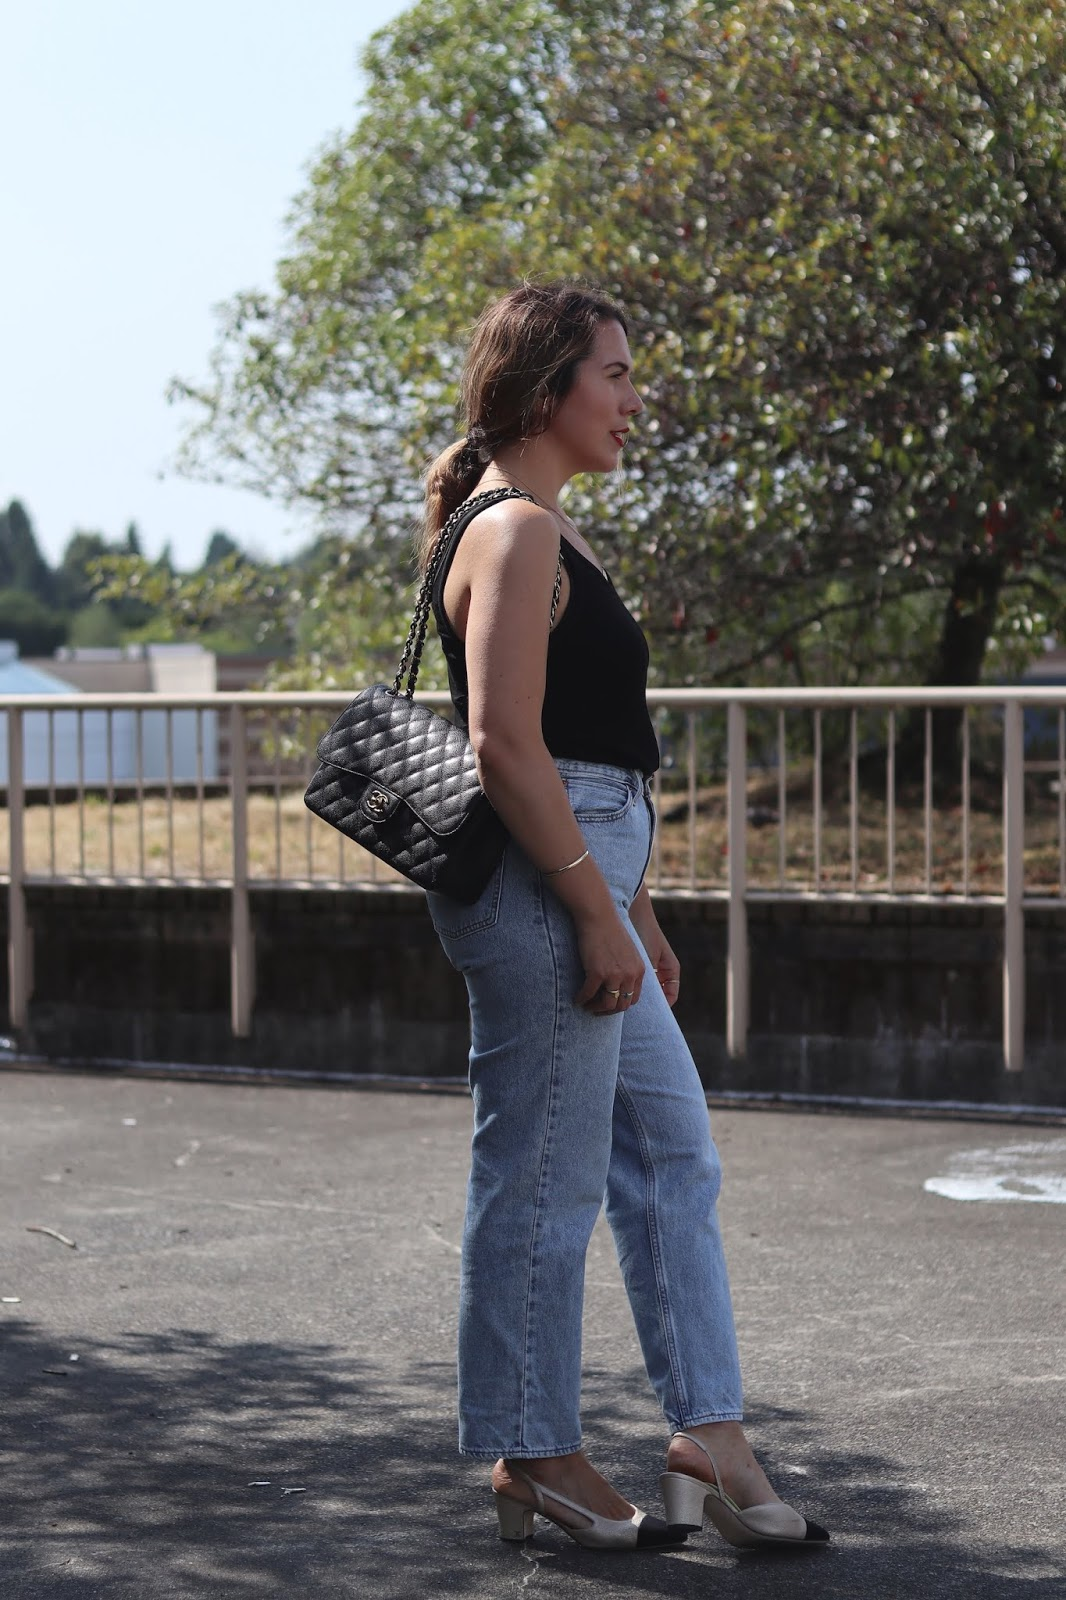 90s outfit idea 2019 levis dad jeans blogger chanel jumbo bag aleesha harris